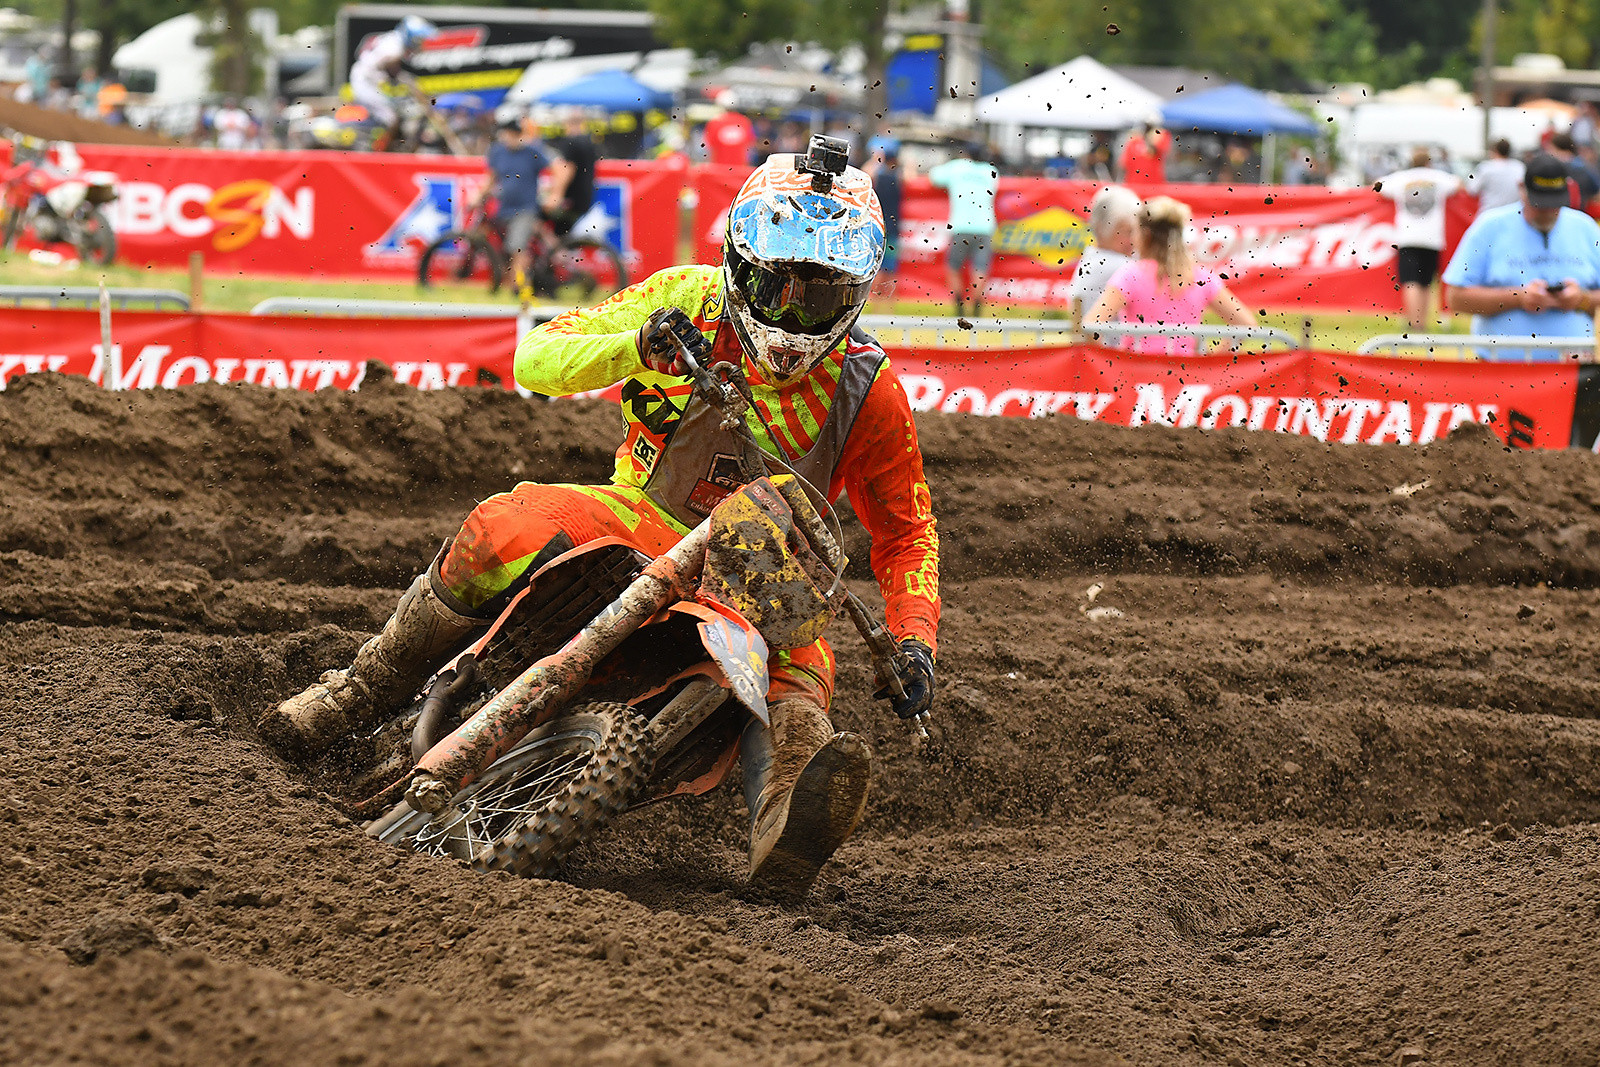 Parker Mashburn followed KTM rider Drake across the finish line in 250 B Limited.